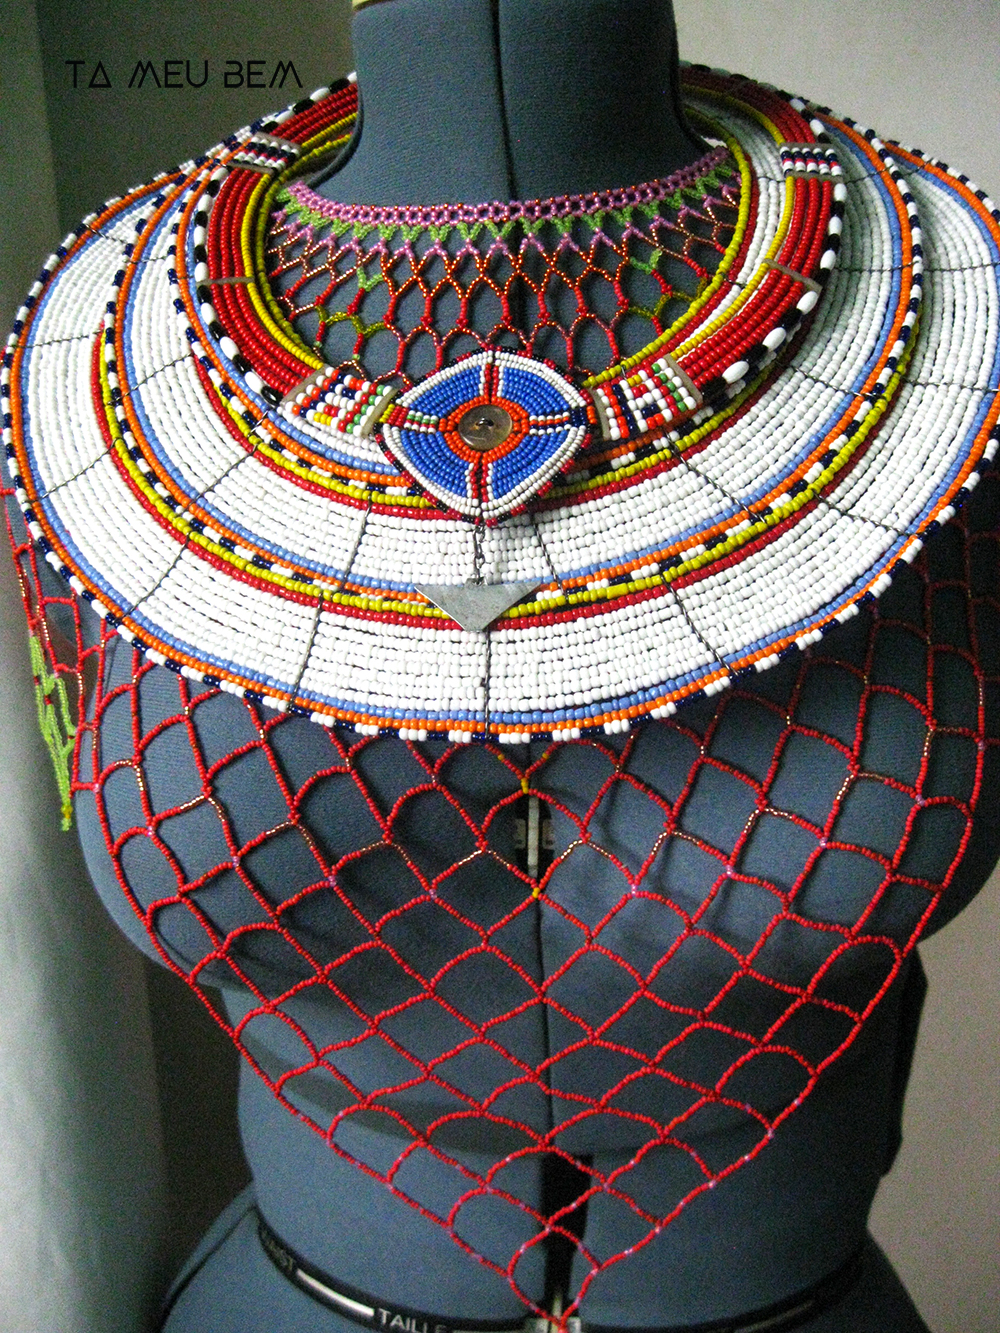 Beadwork from Kenya mixed with my own beaded netting (Fully Adorned) style.